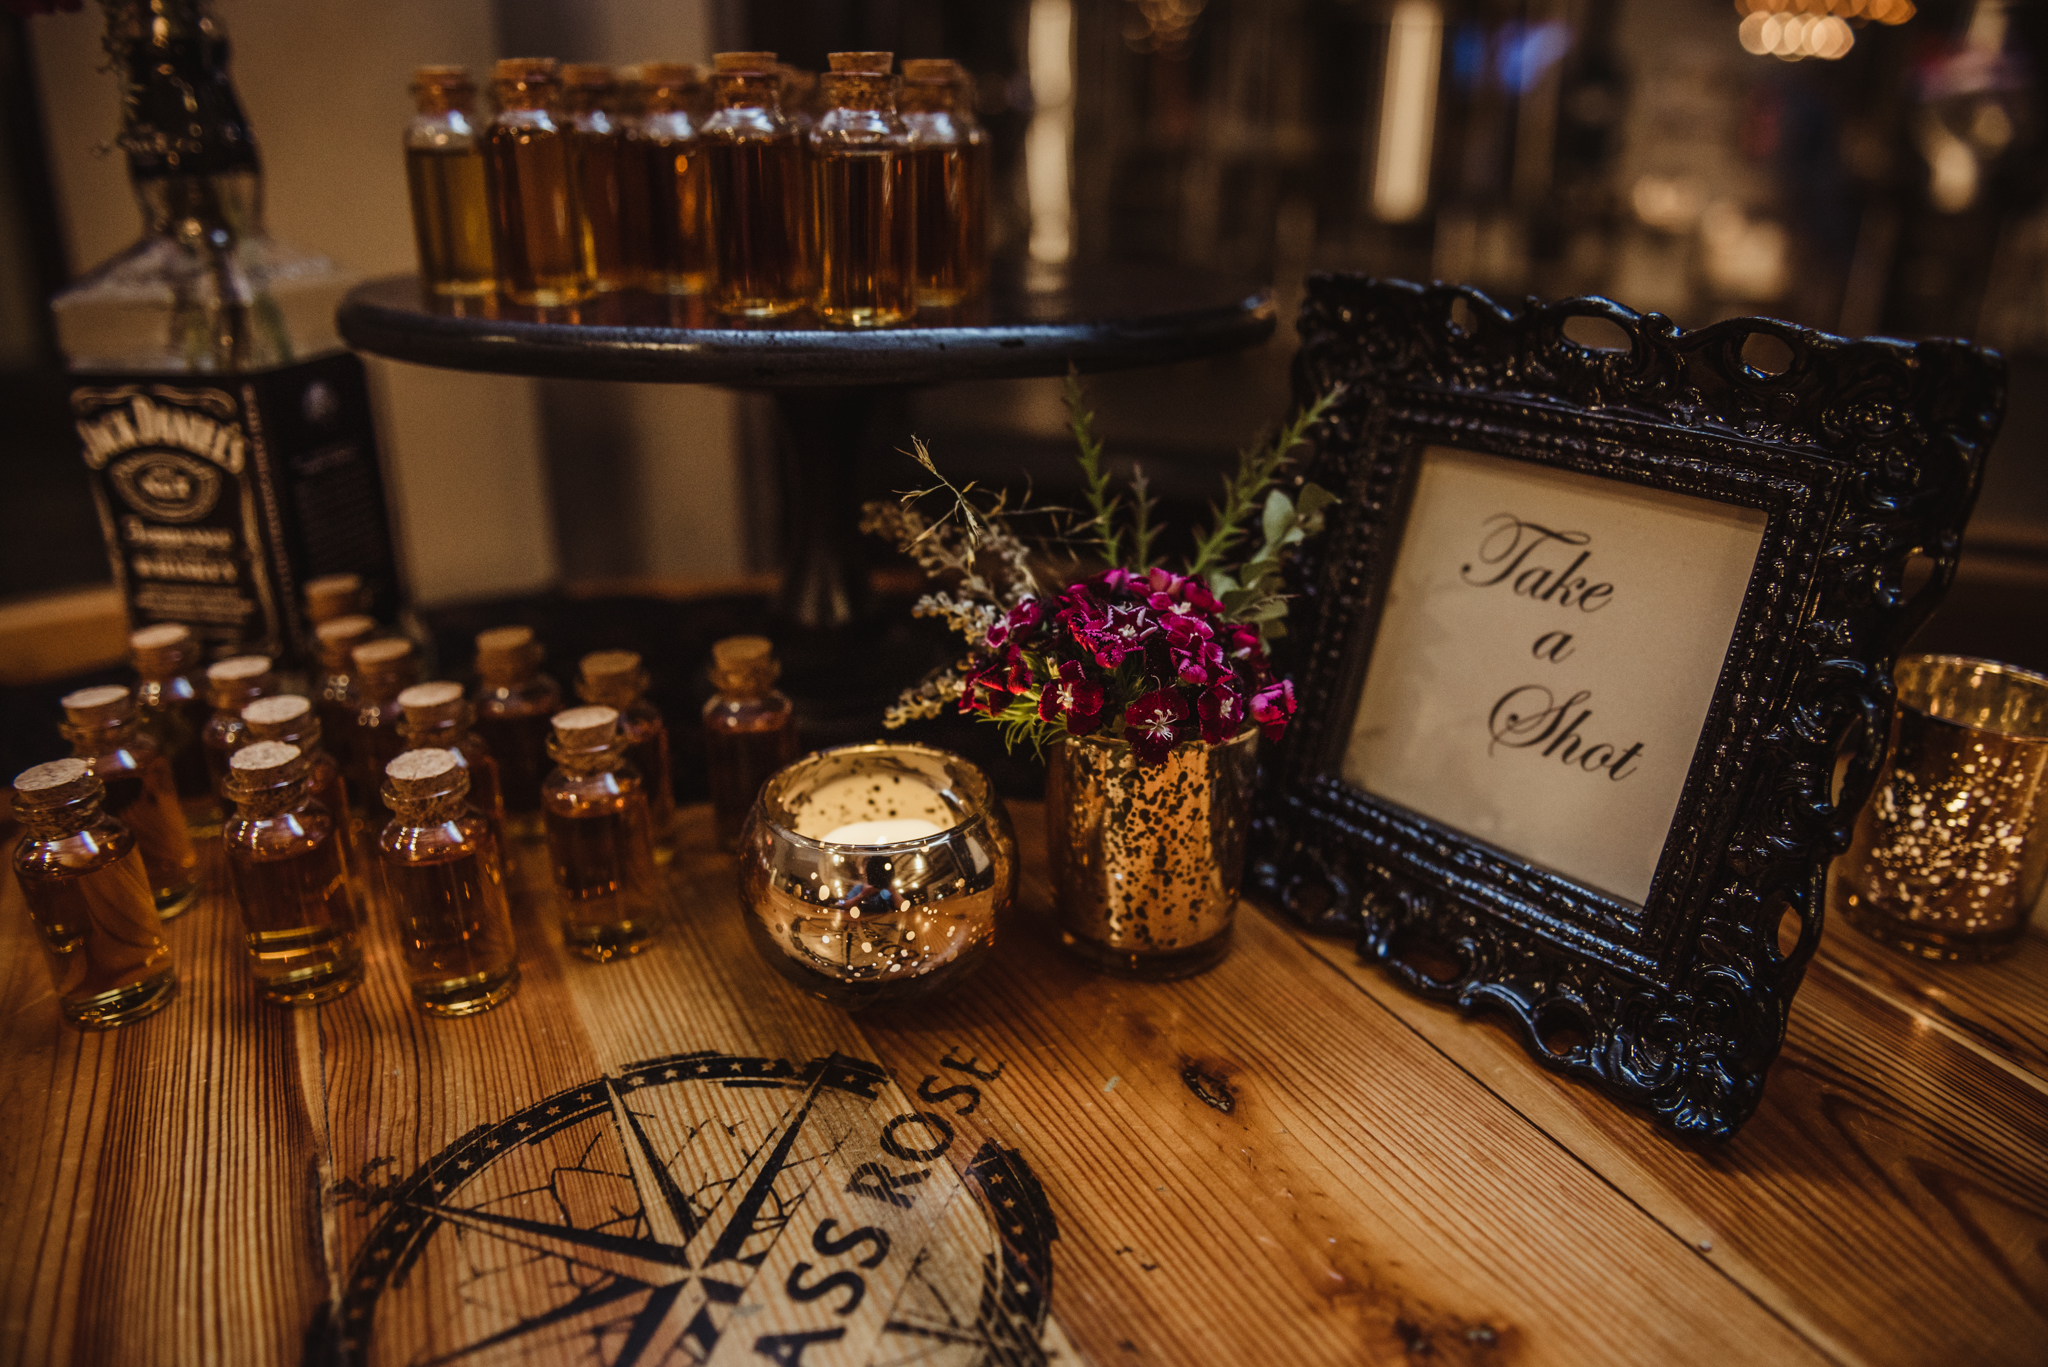 individual-shots-of-jack-daniels-as-wedding-favors.jpg